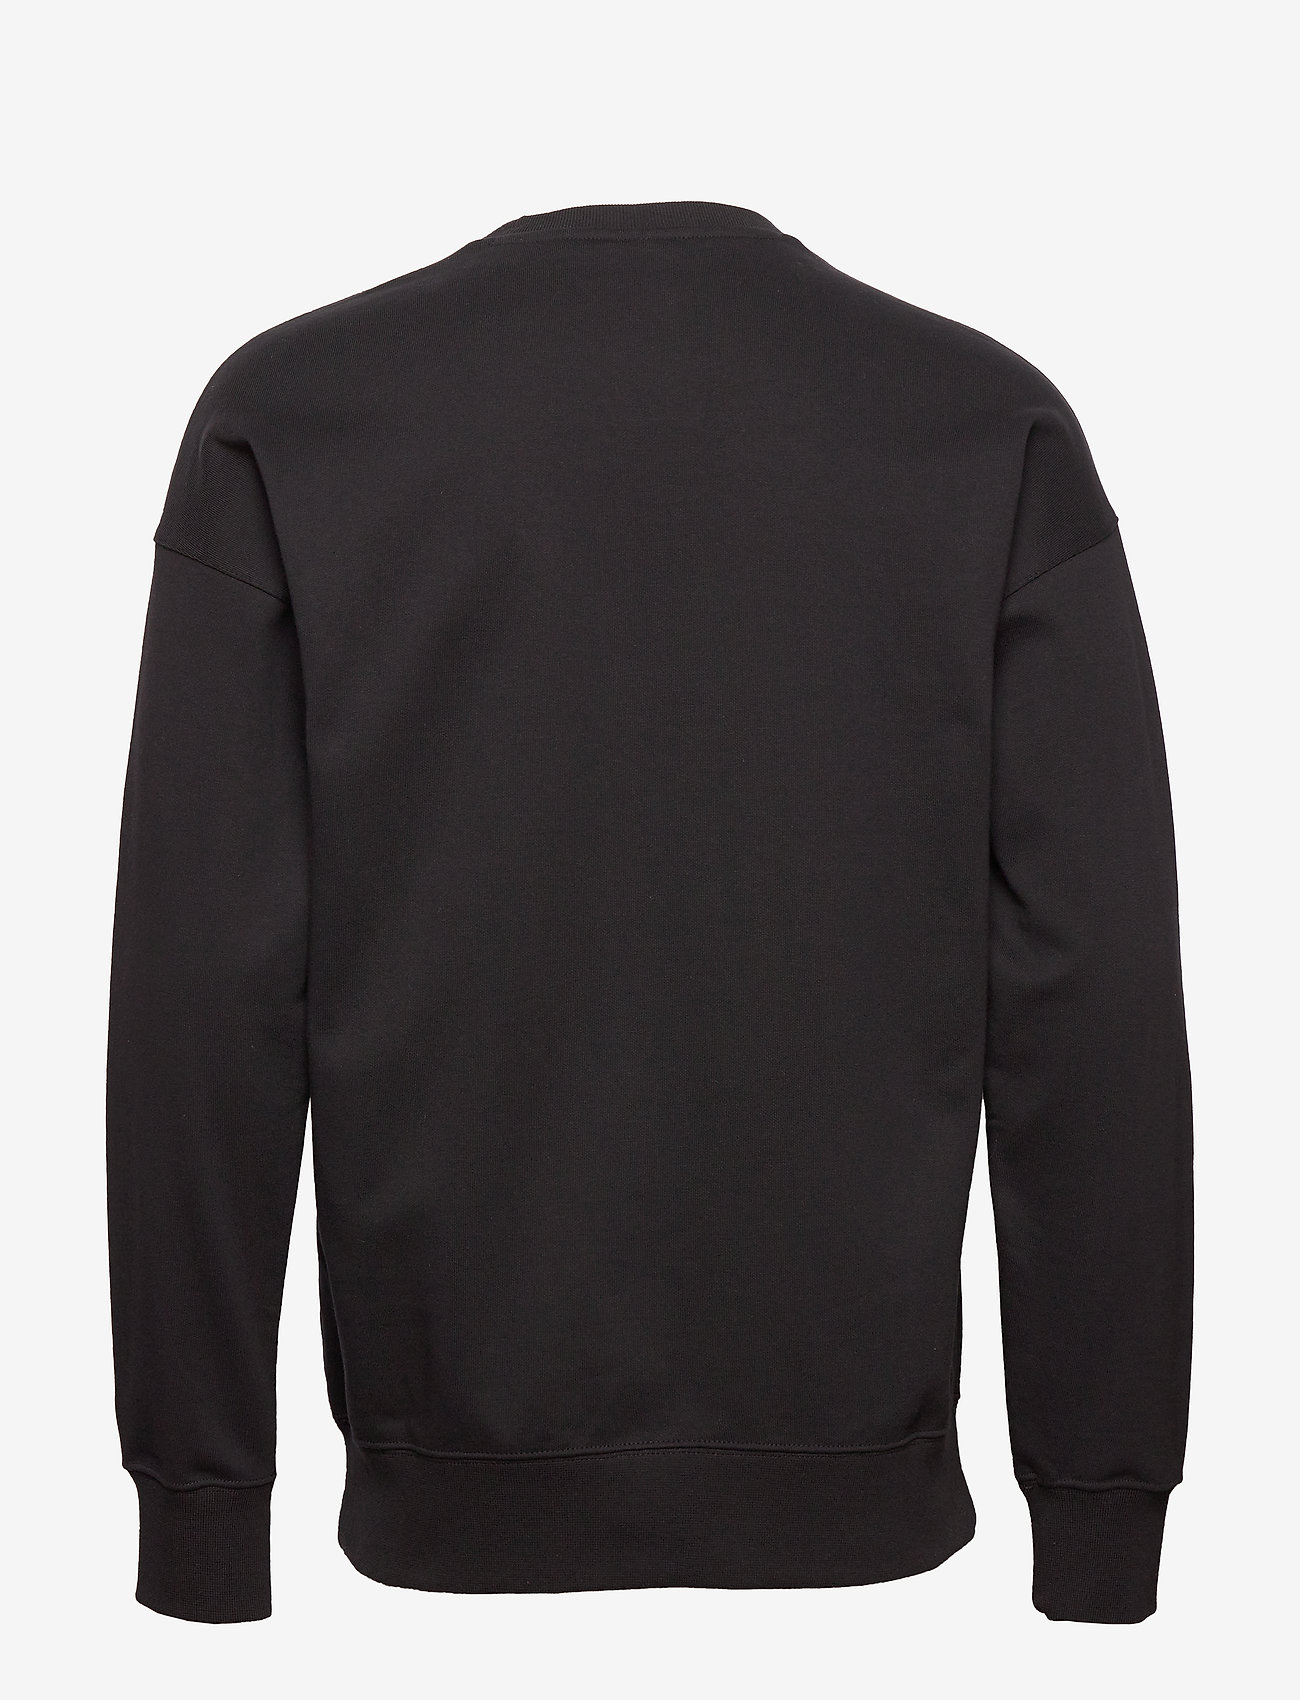 Champion Crewneck Sweatshirt - Sweatshirts BLACK BEAUTY - Menn Klær